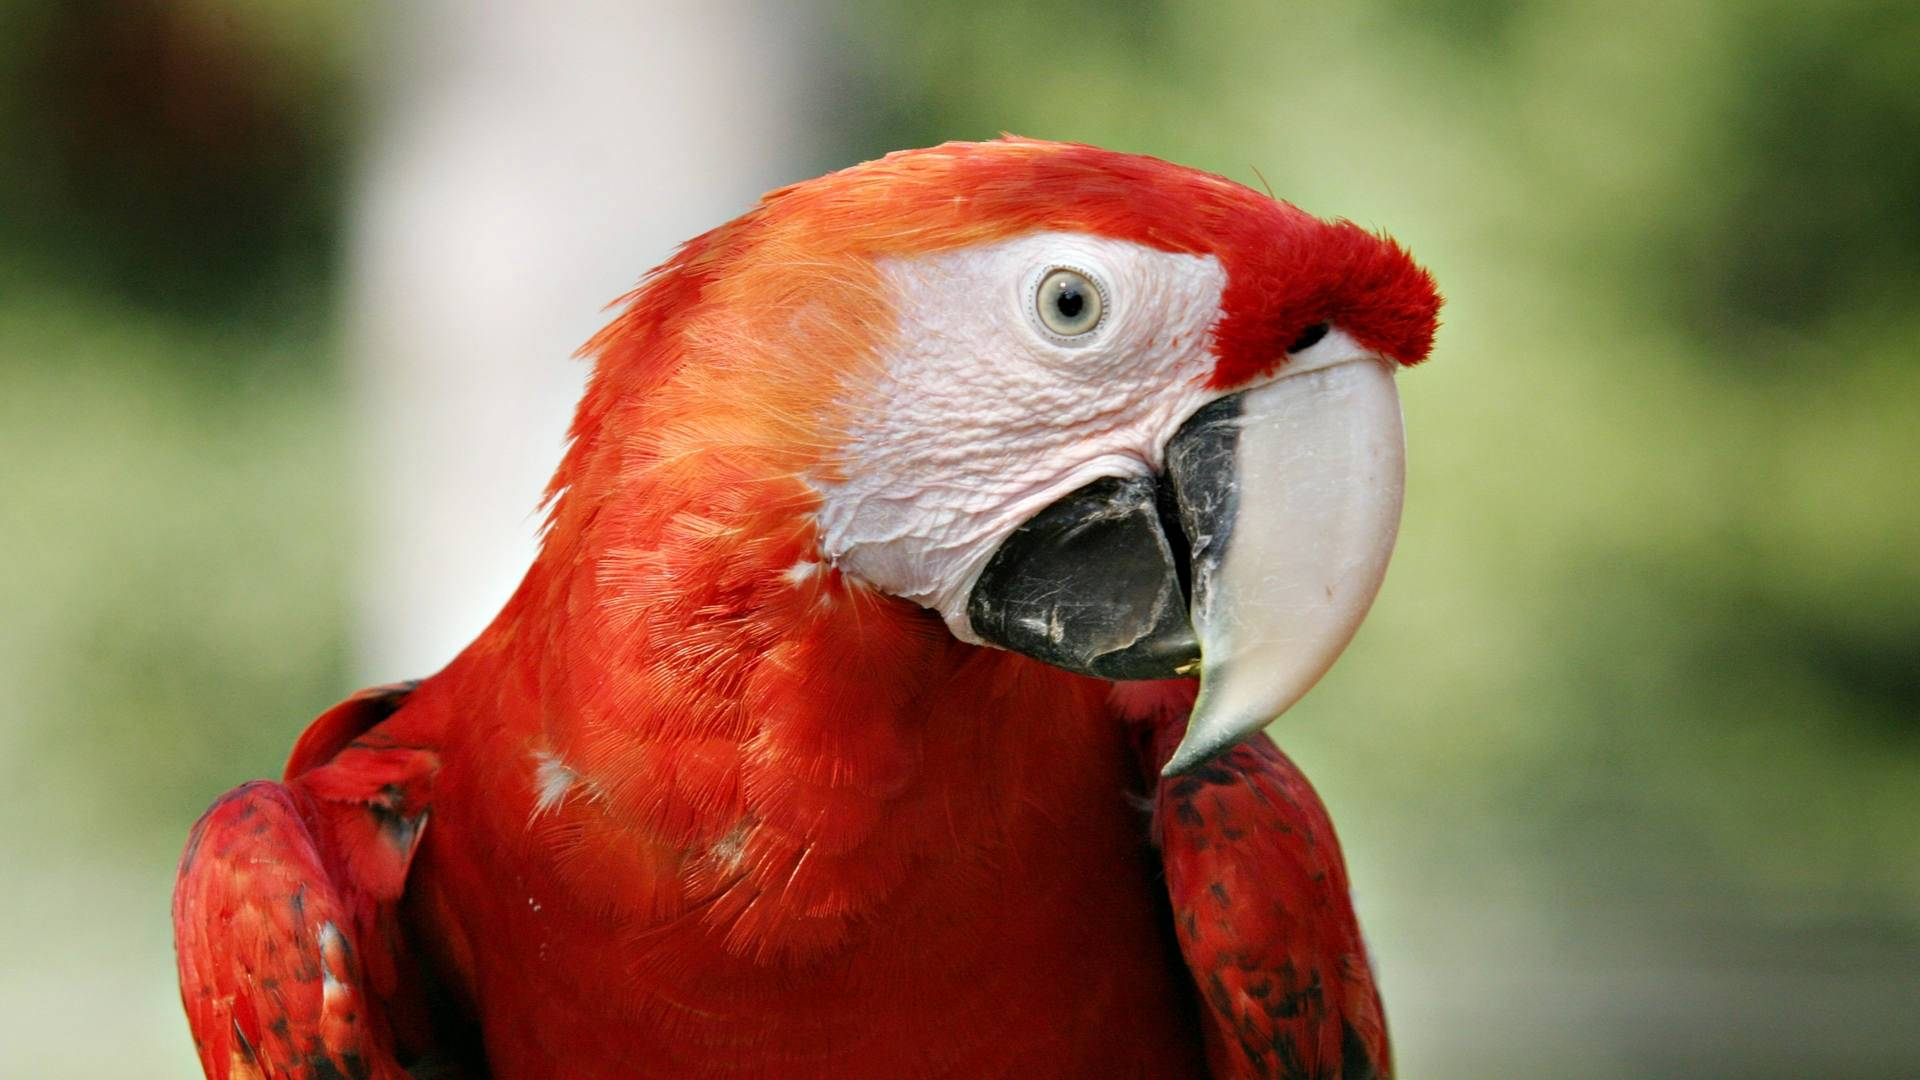 Cute Birds Wallpapers For Mobile Phones Parrots Hd Wallpapers